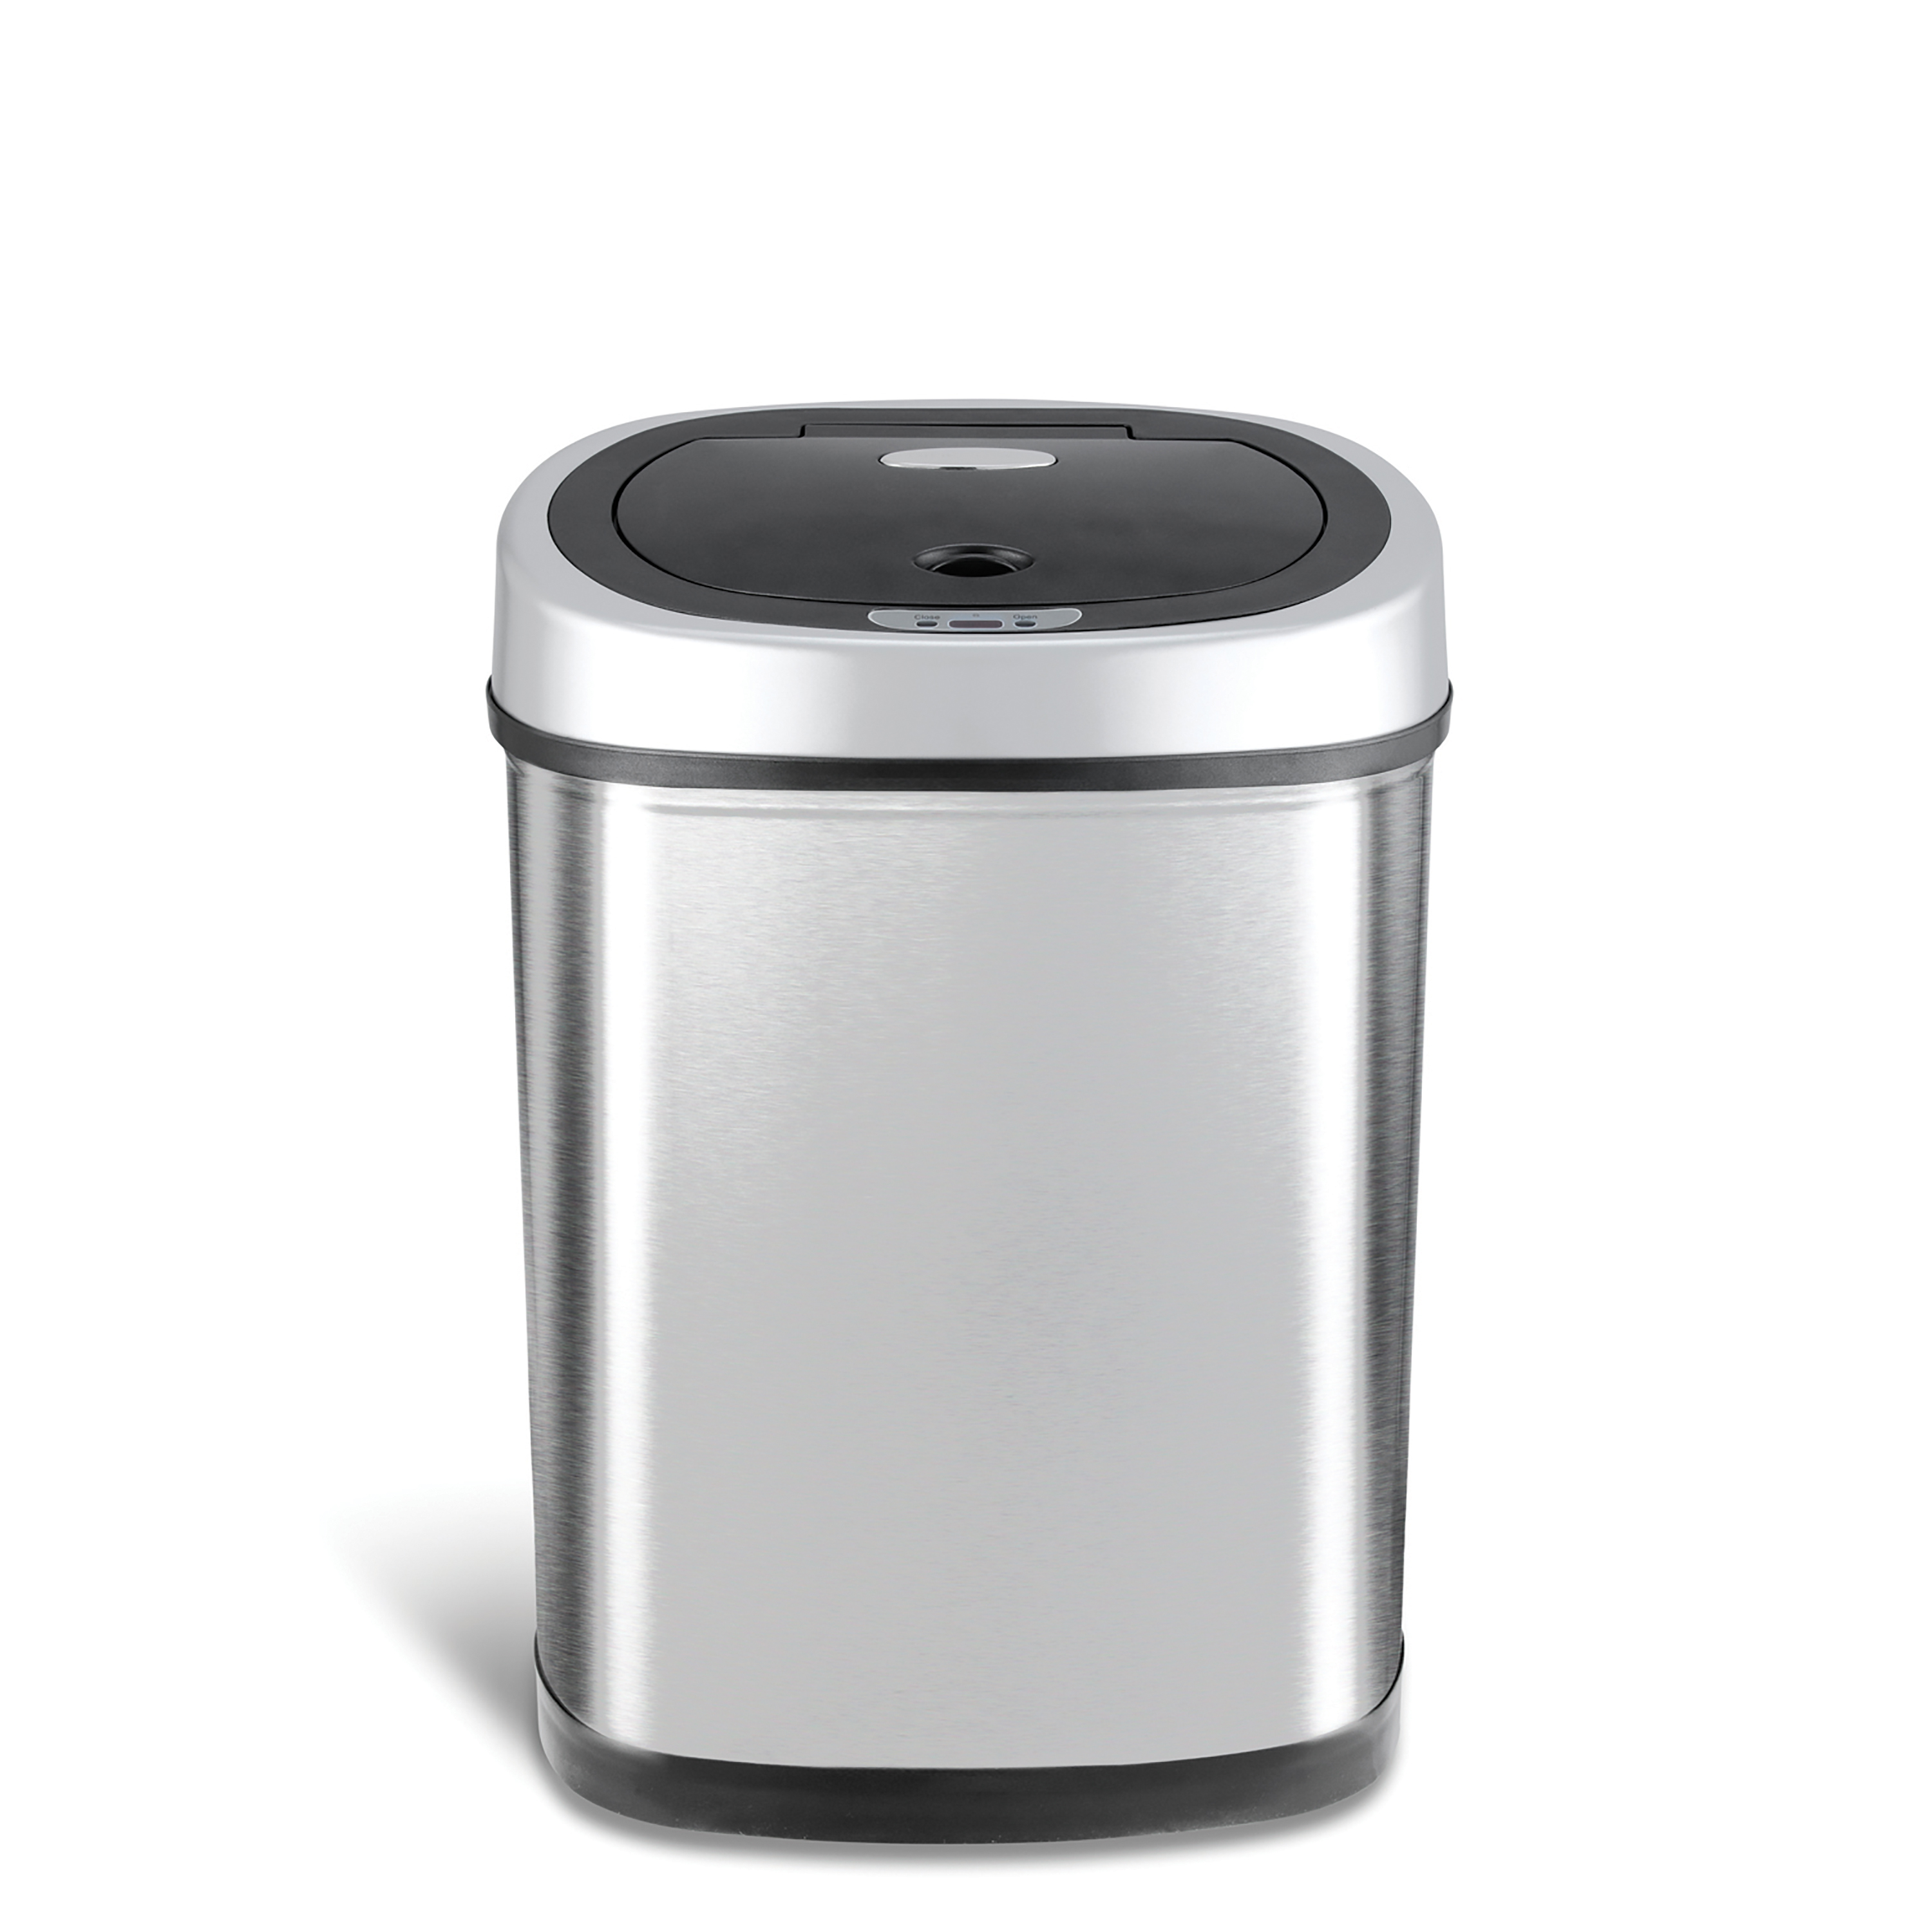 Nine Stars Motion Sensor Oval Touchless 11 Gal Trash Can, Stainless Steel by Nine Stars